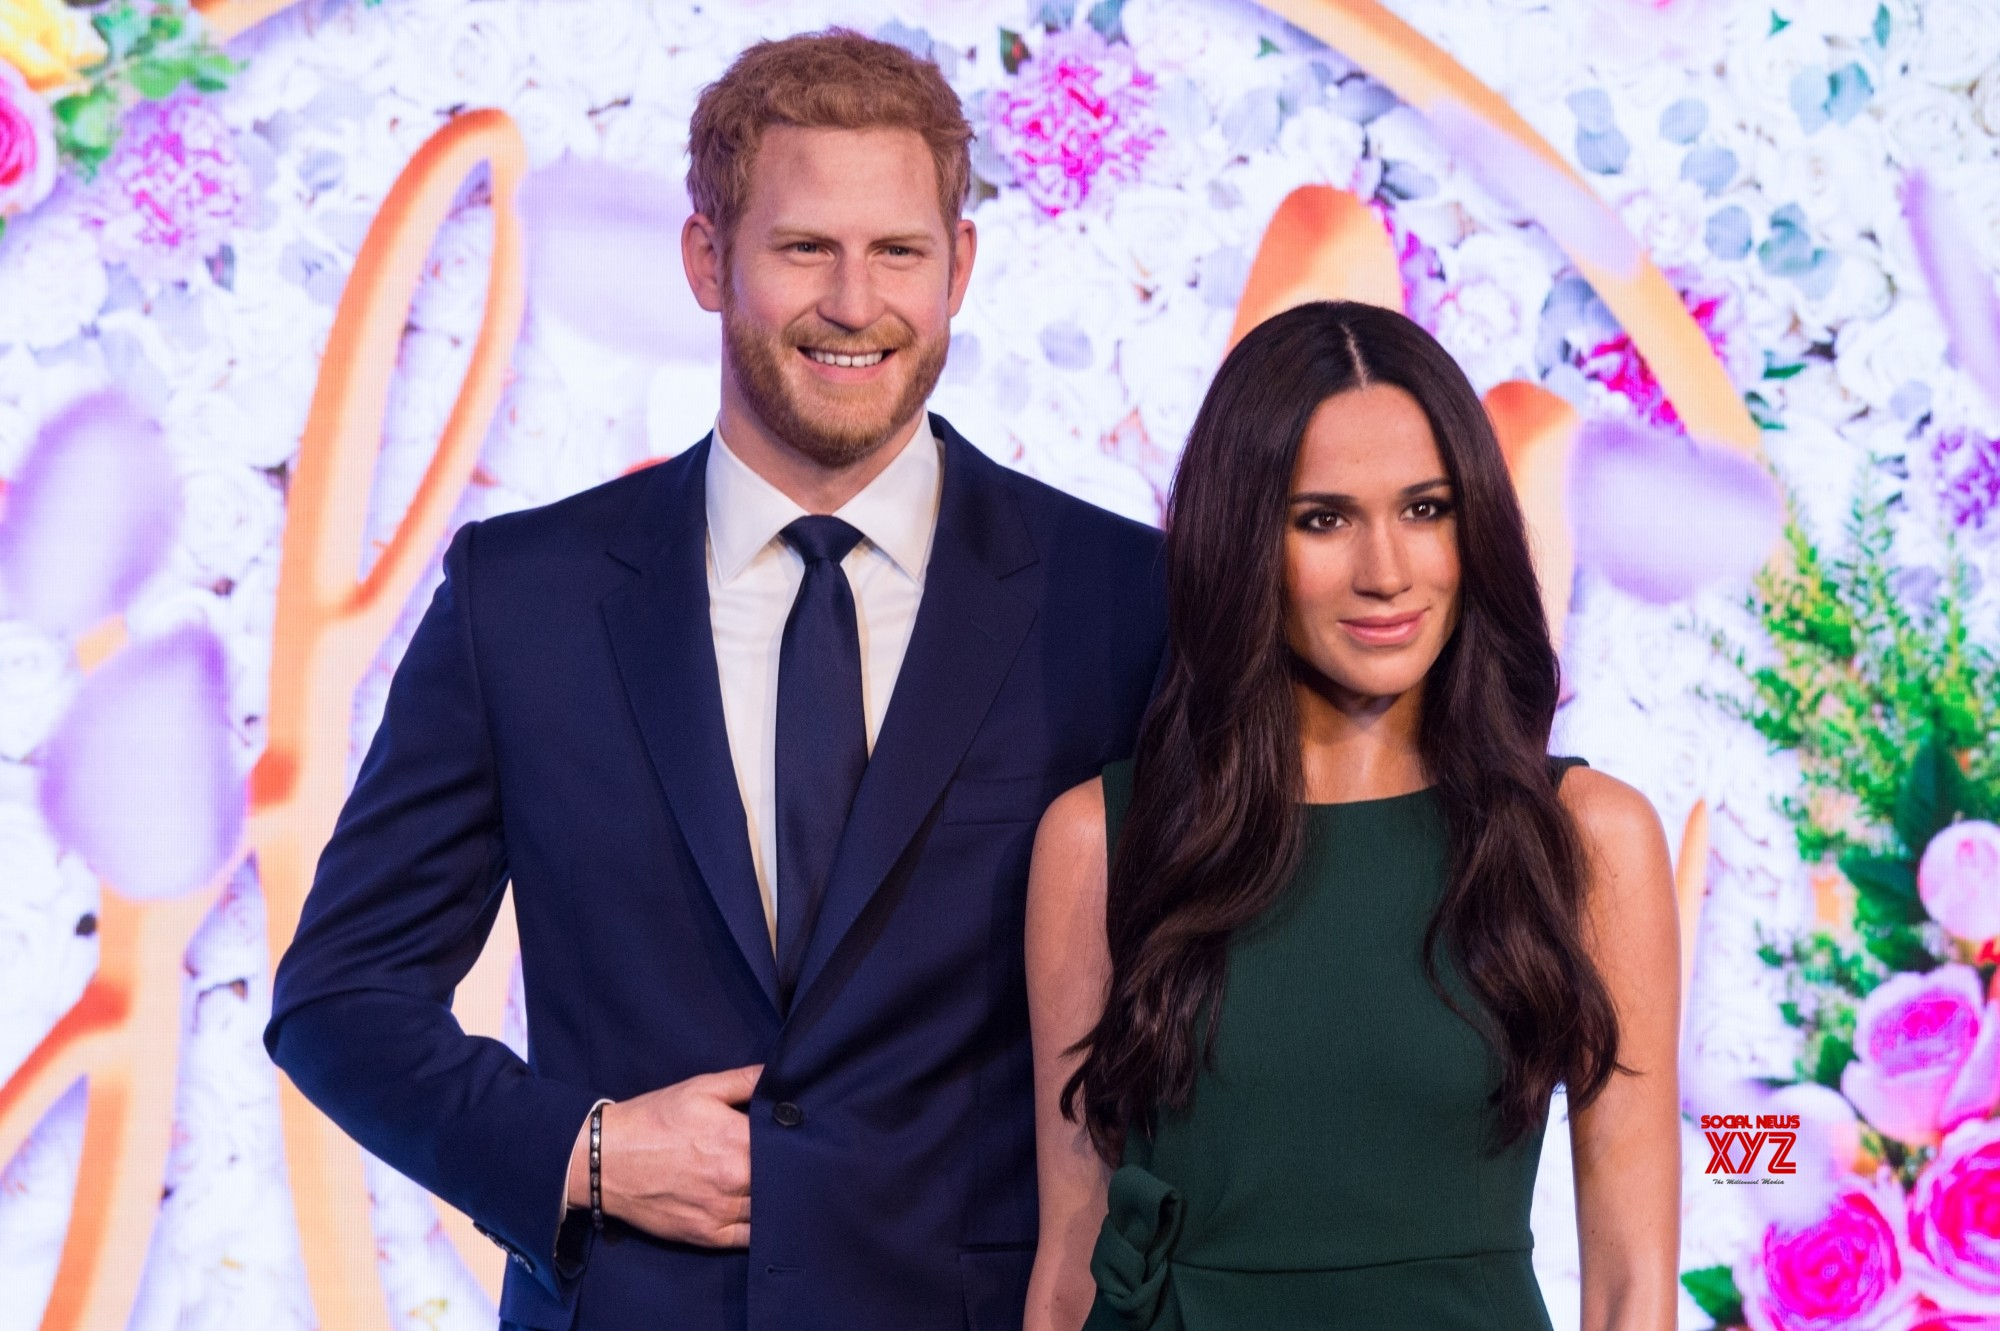 Prince Harry on 1st royal duty since talks with Queen